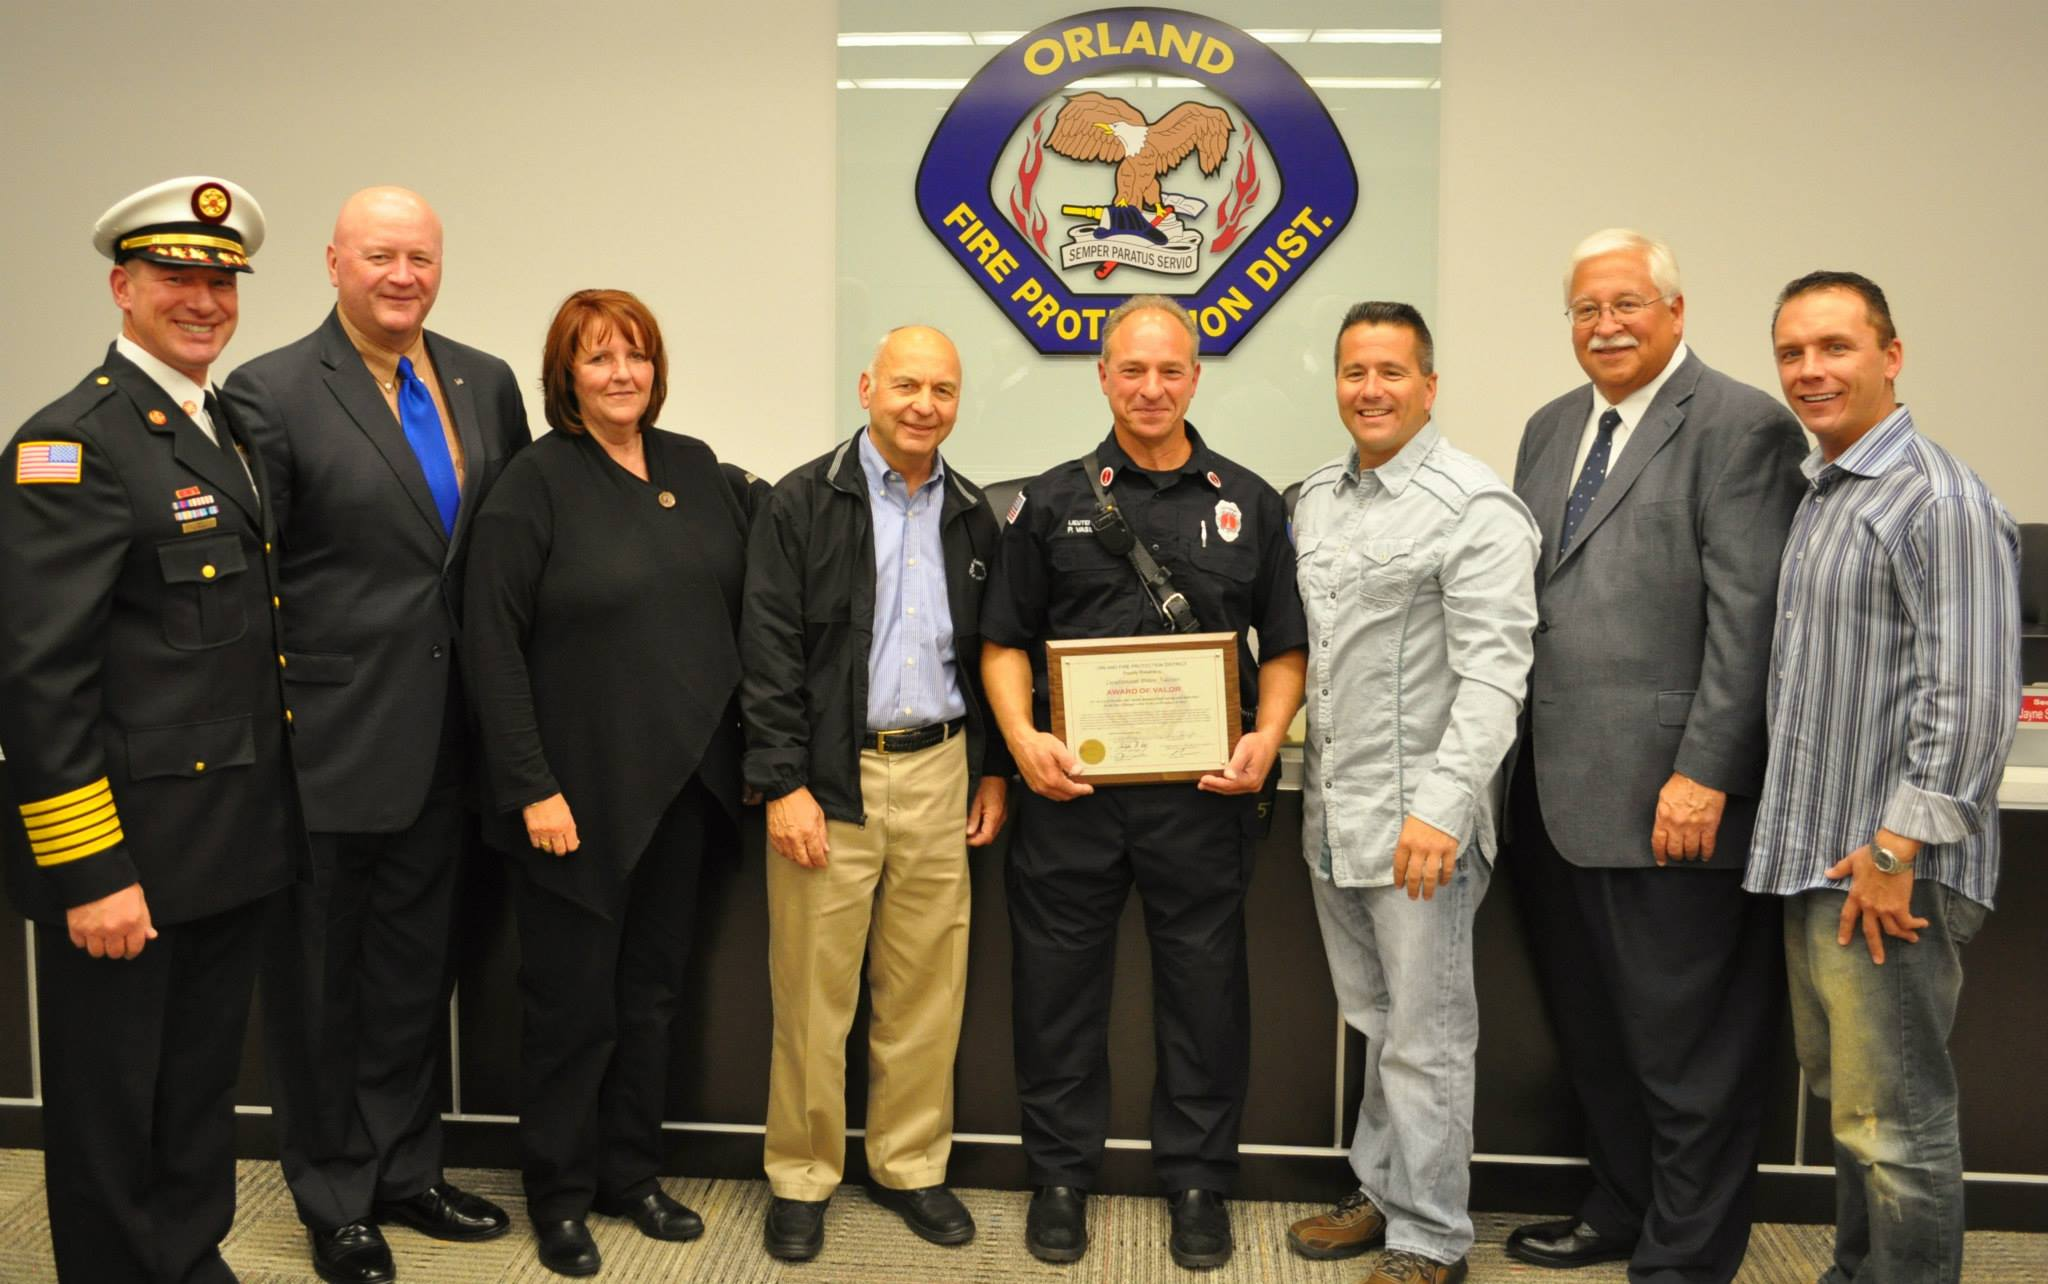 OFPD District honors firefighters for service and heroism